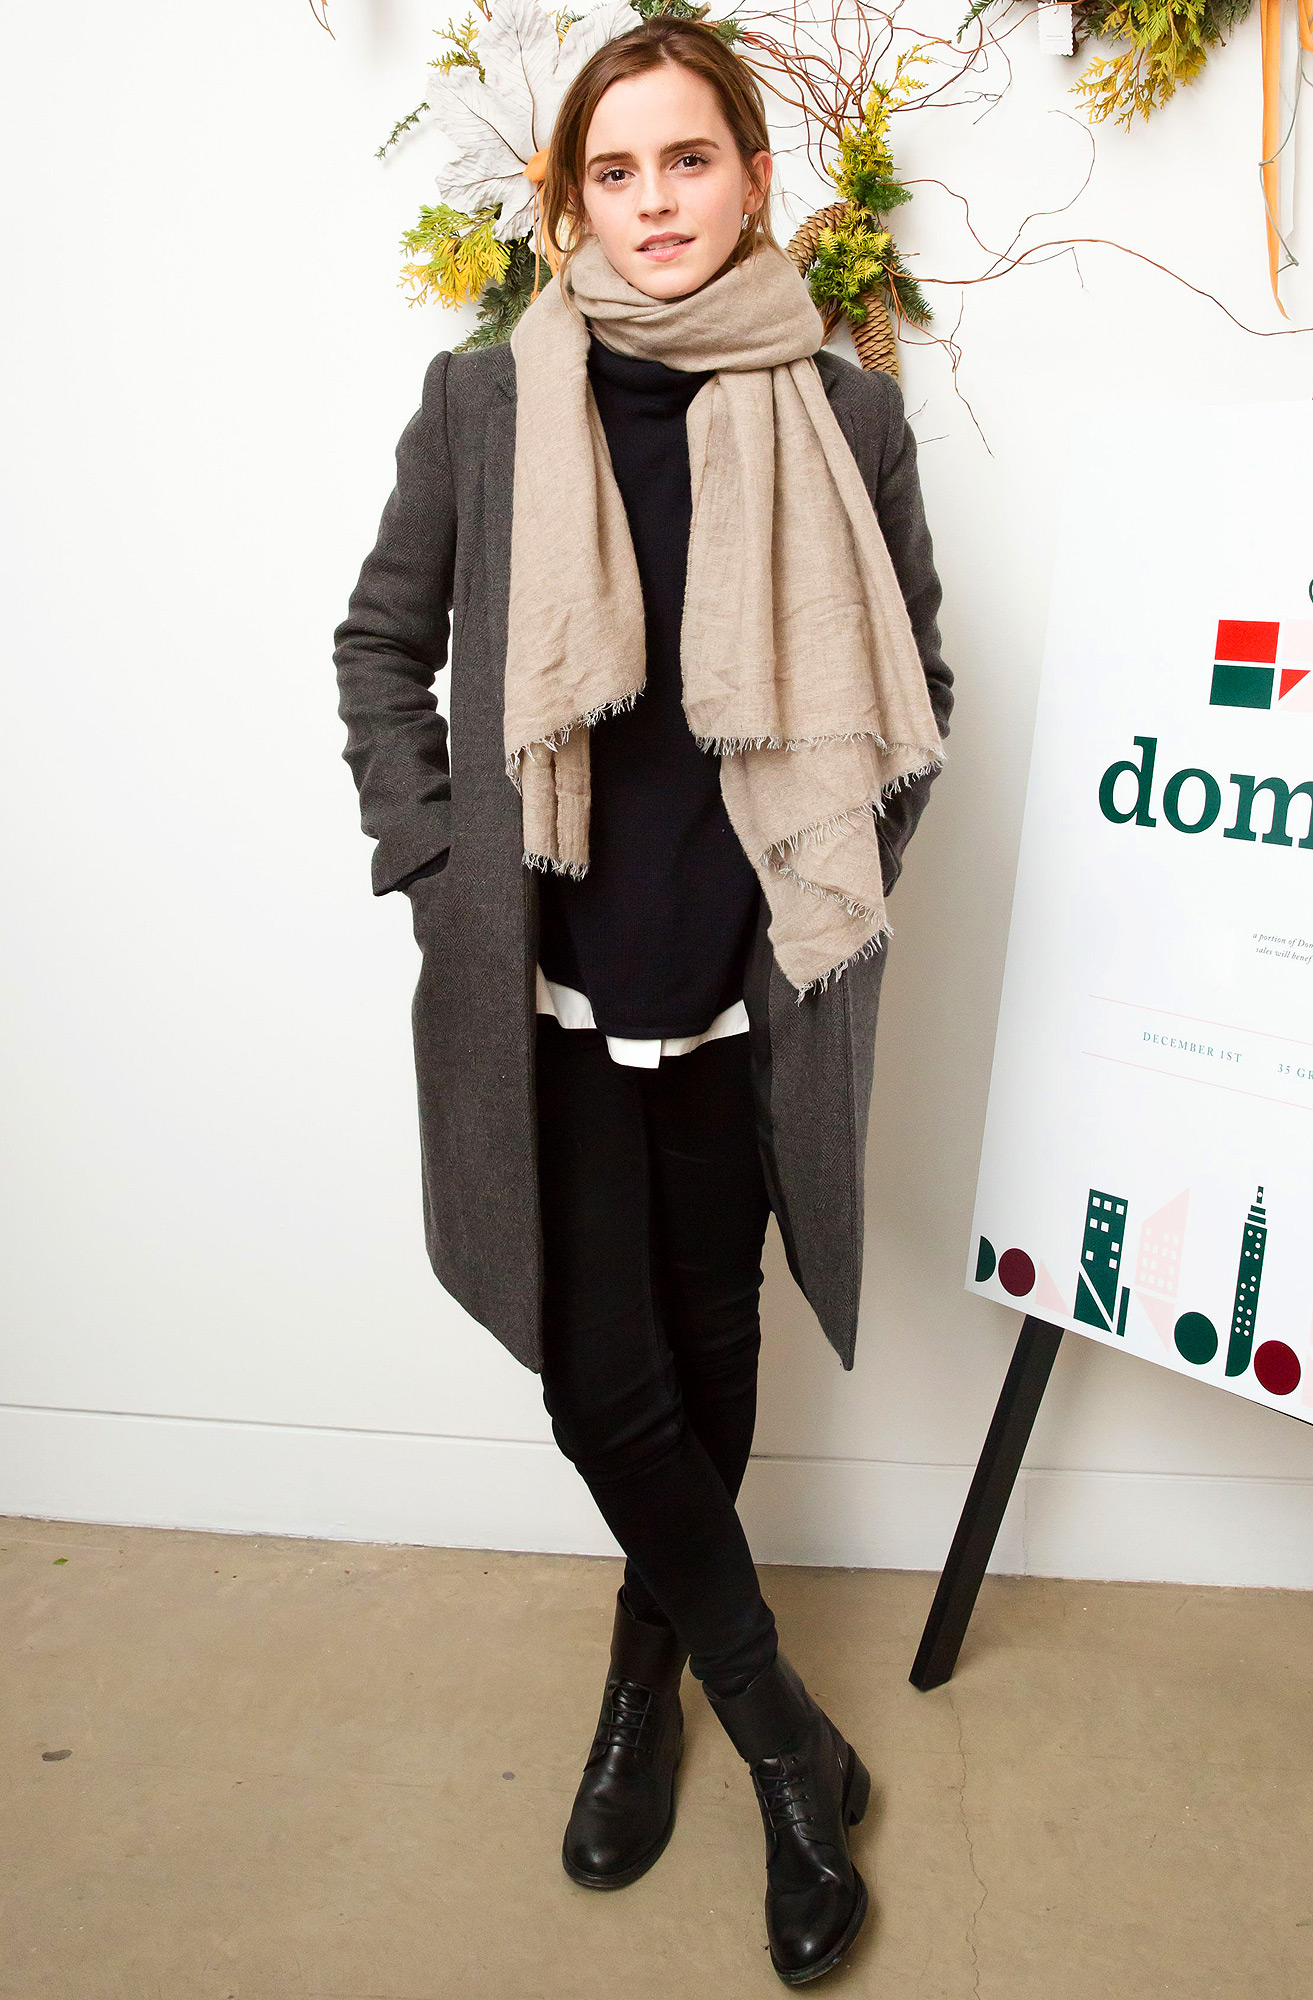 Domino Magazine Holiday Pop Up, New York, USA - 01 Dec 2016